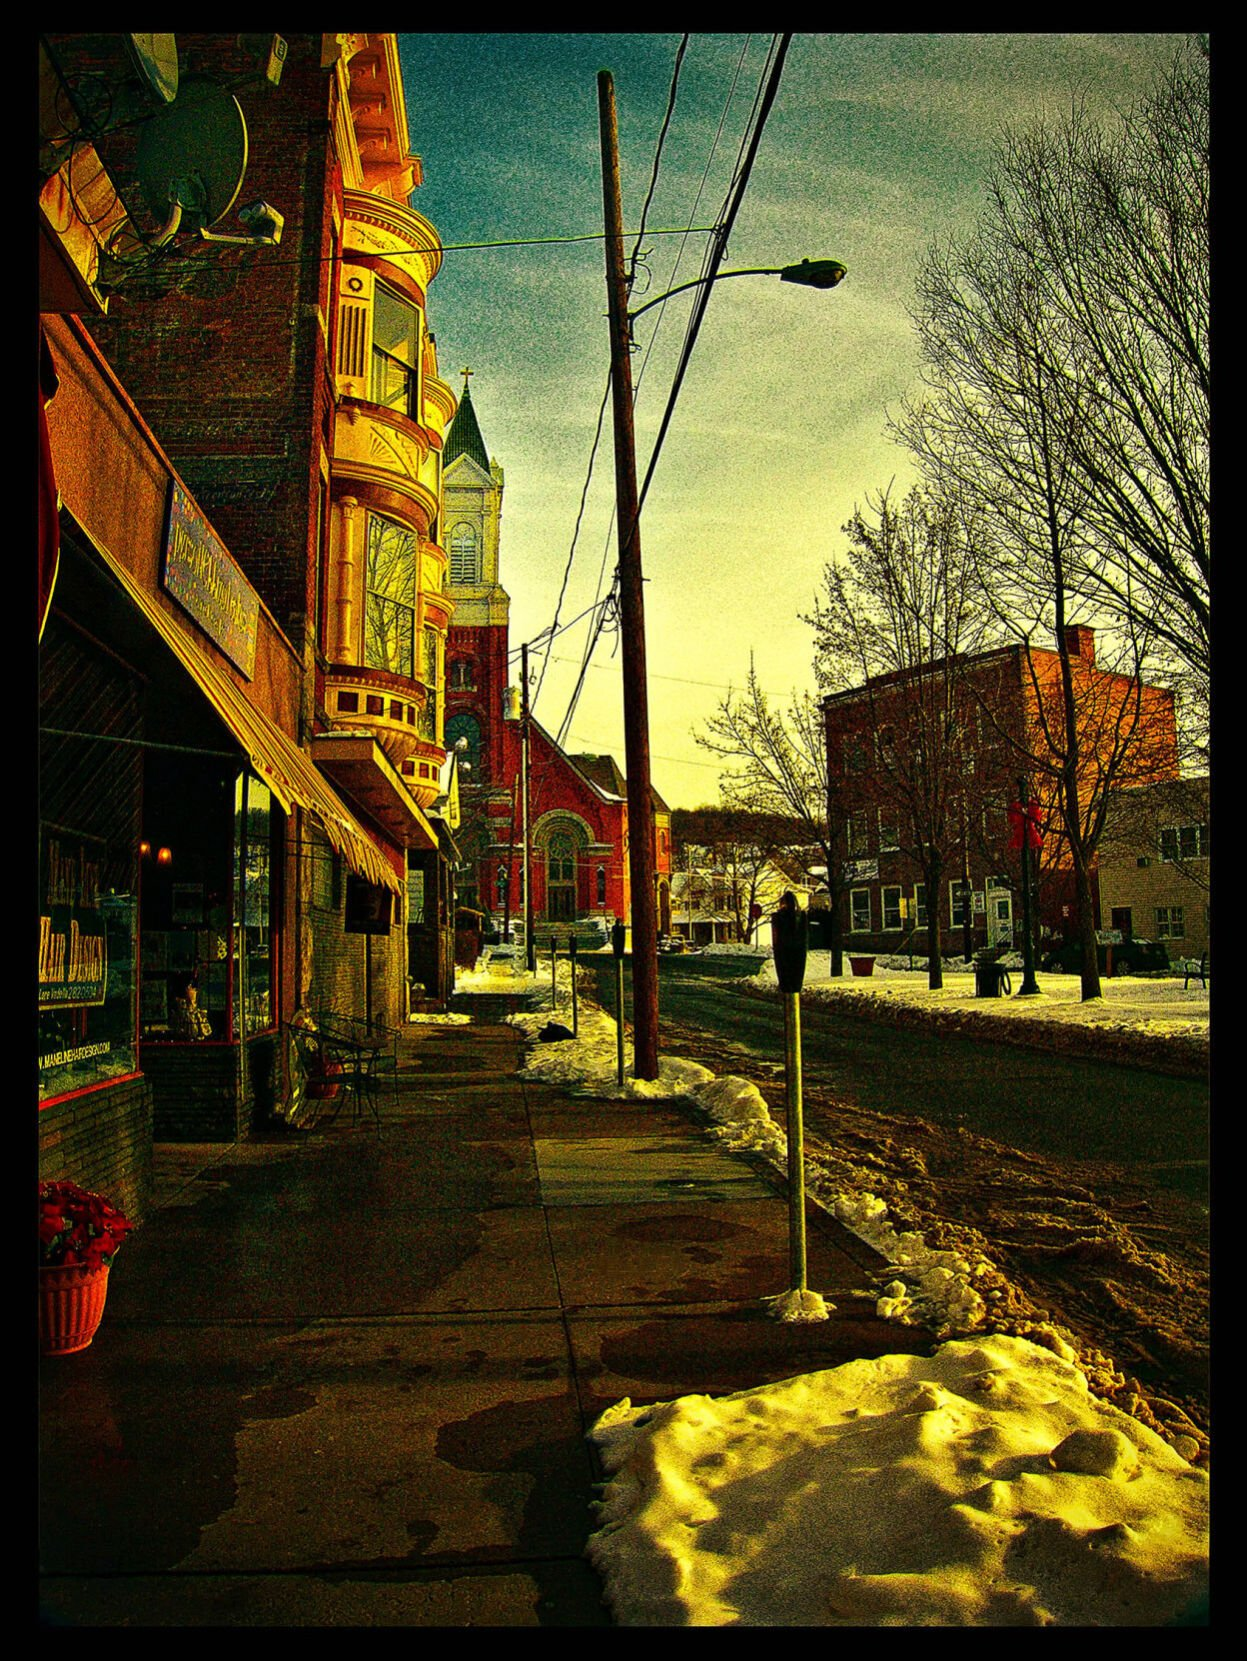 A photograph titled Day's End by Ruthanne Jones